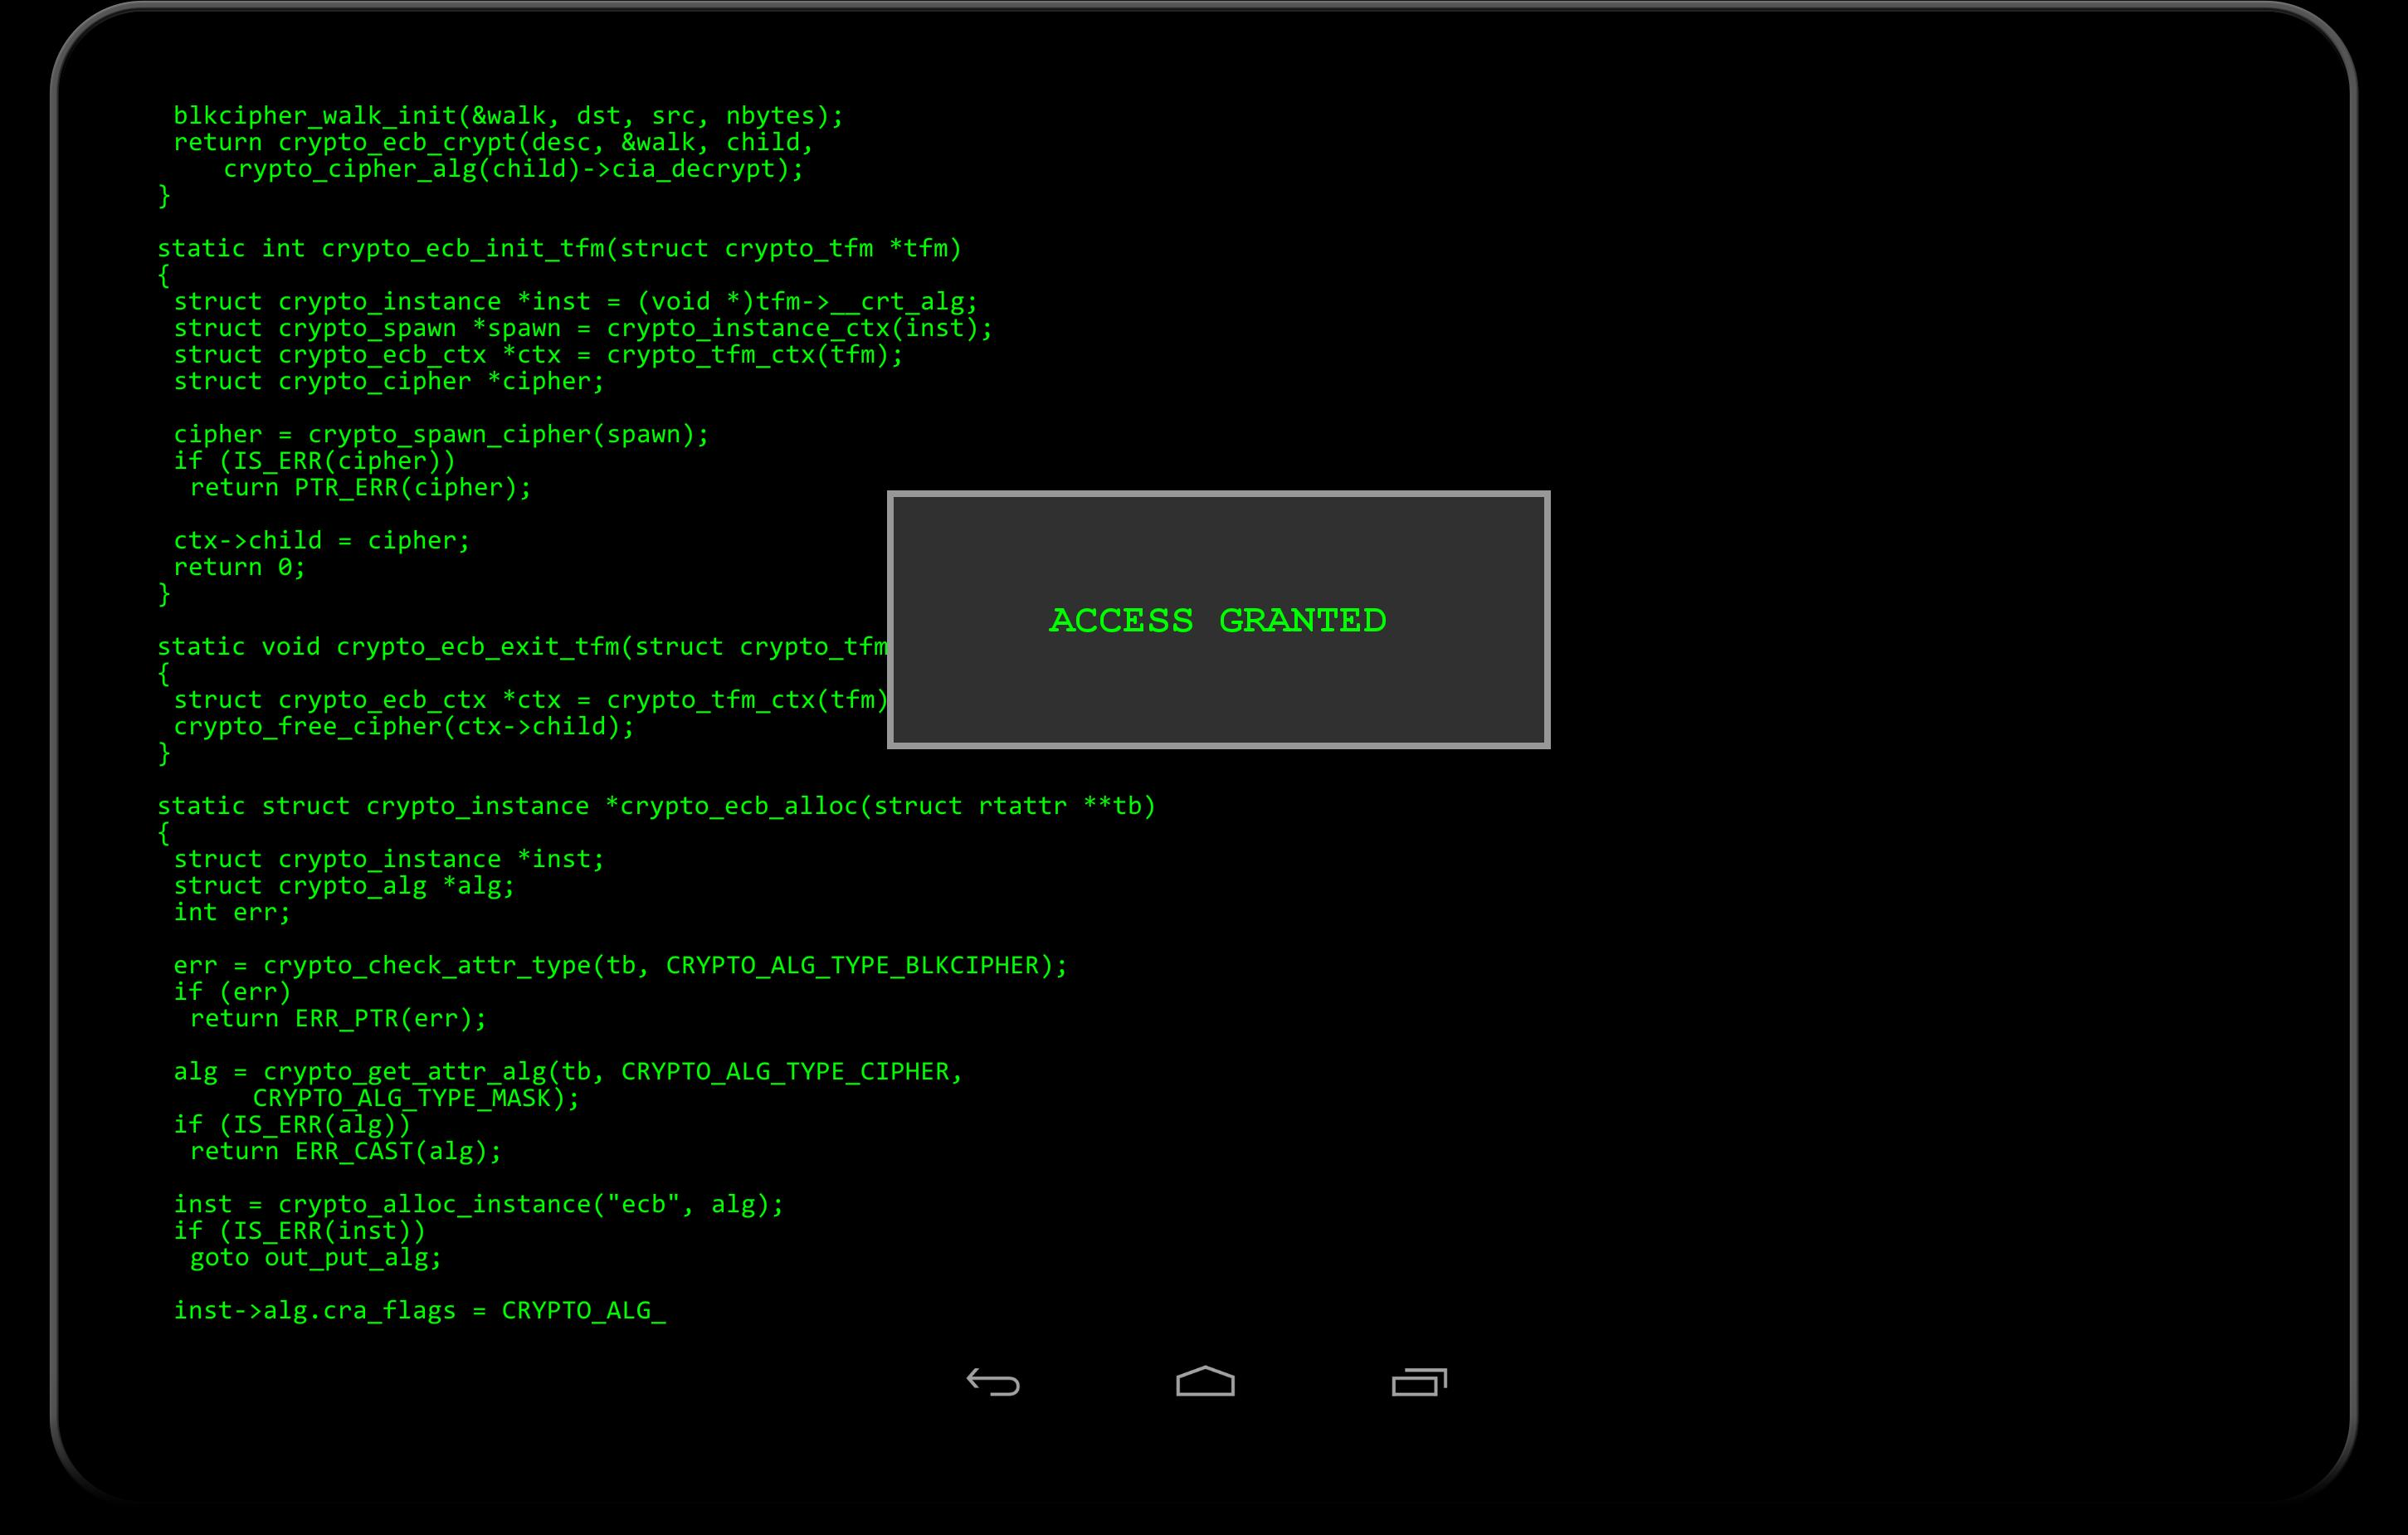 Computer Hacker Prank! for Android - APK Download